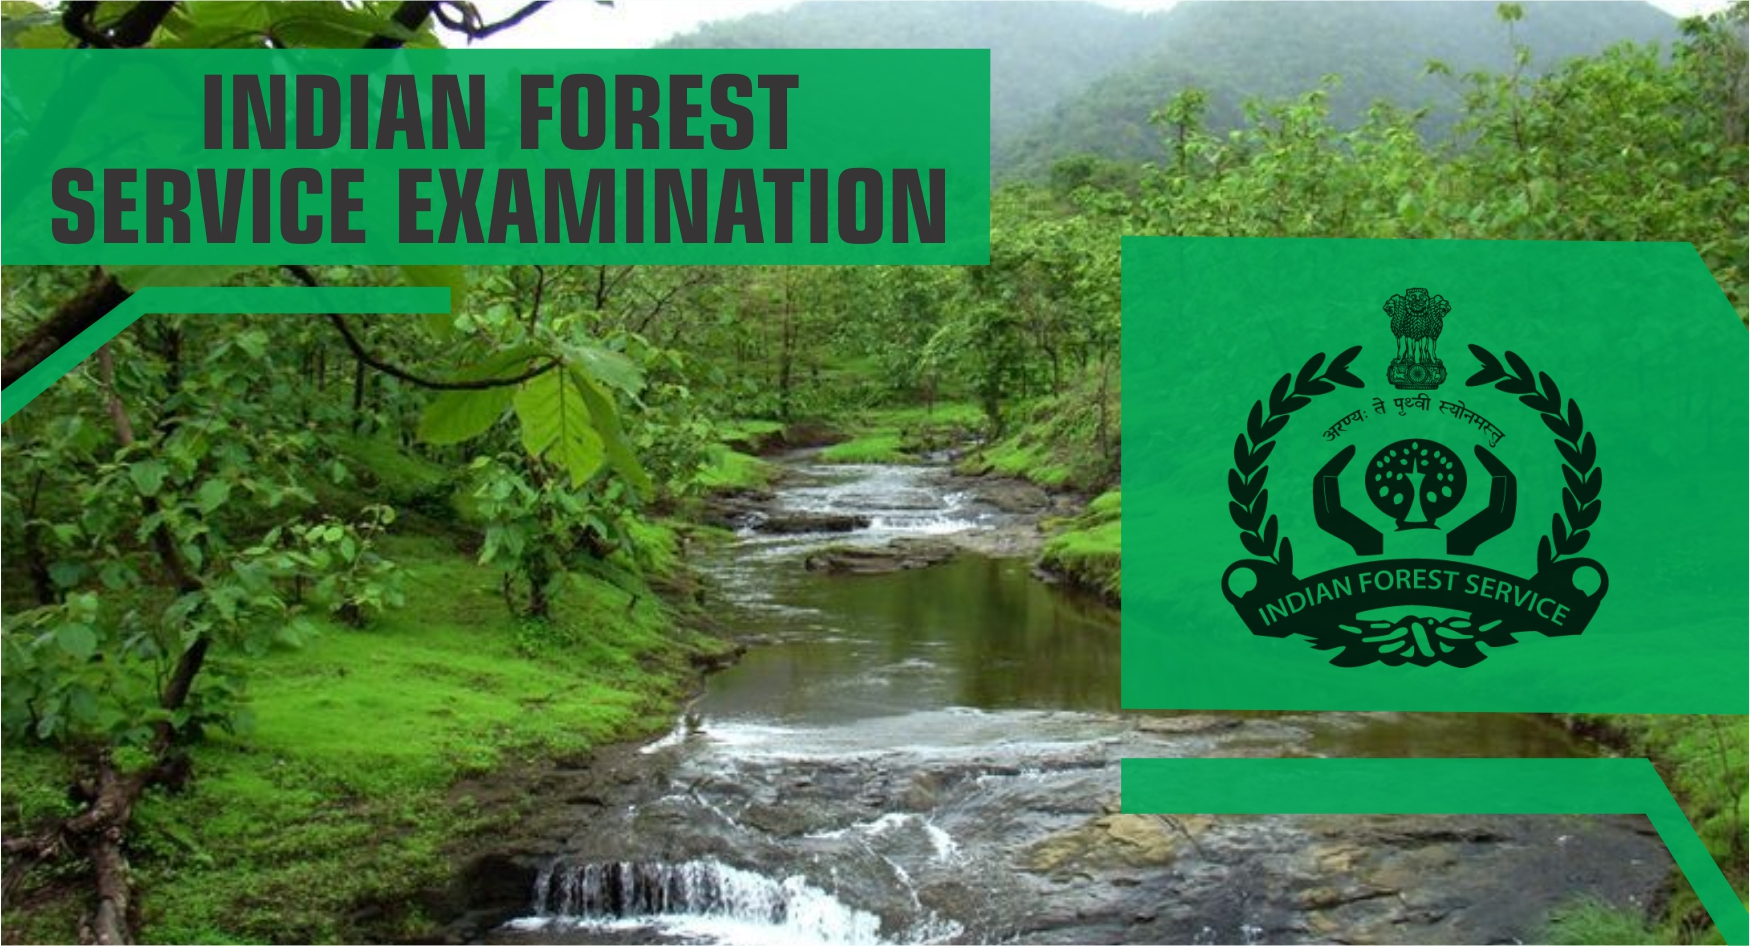 Exams under UPSC - Indian Forest Service Examination